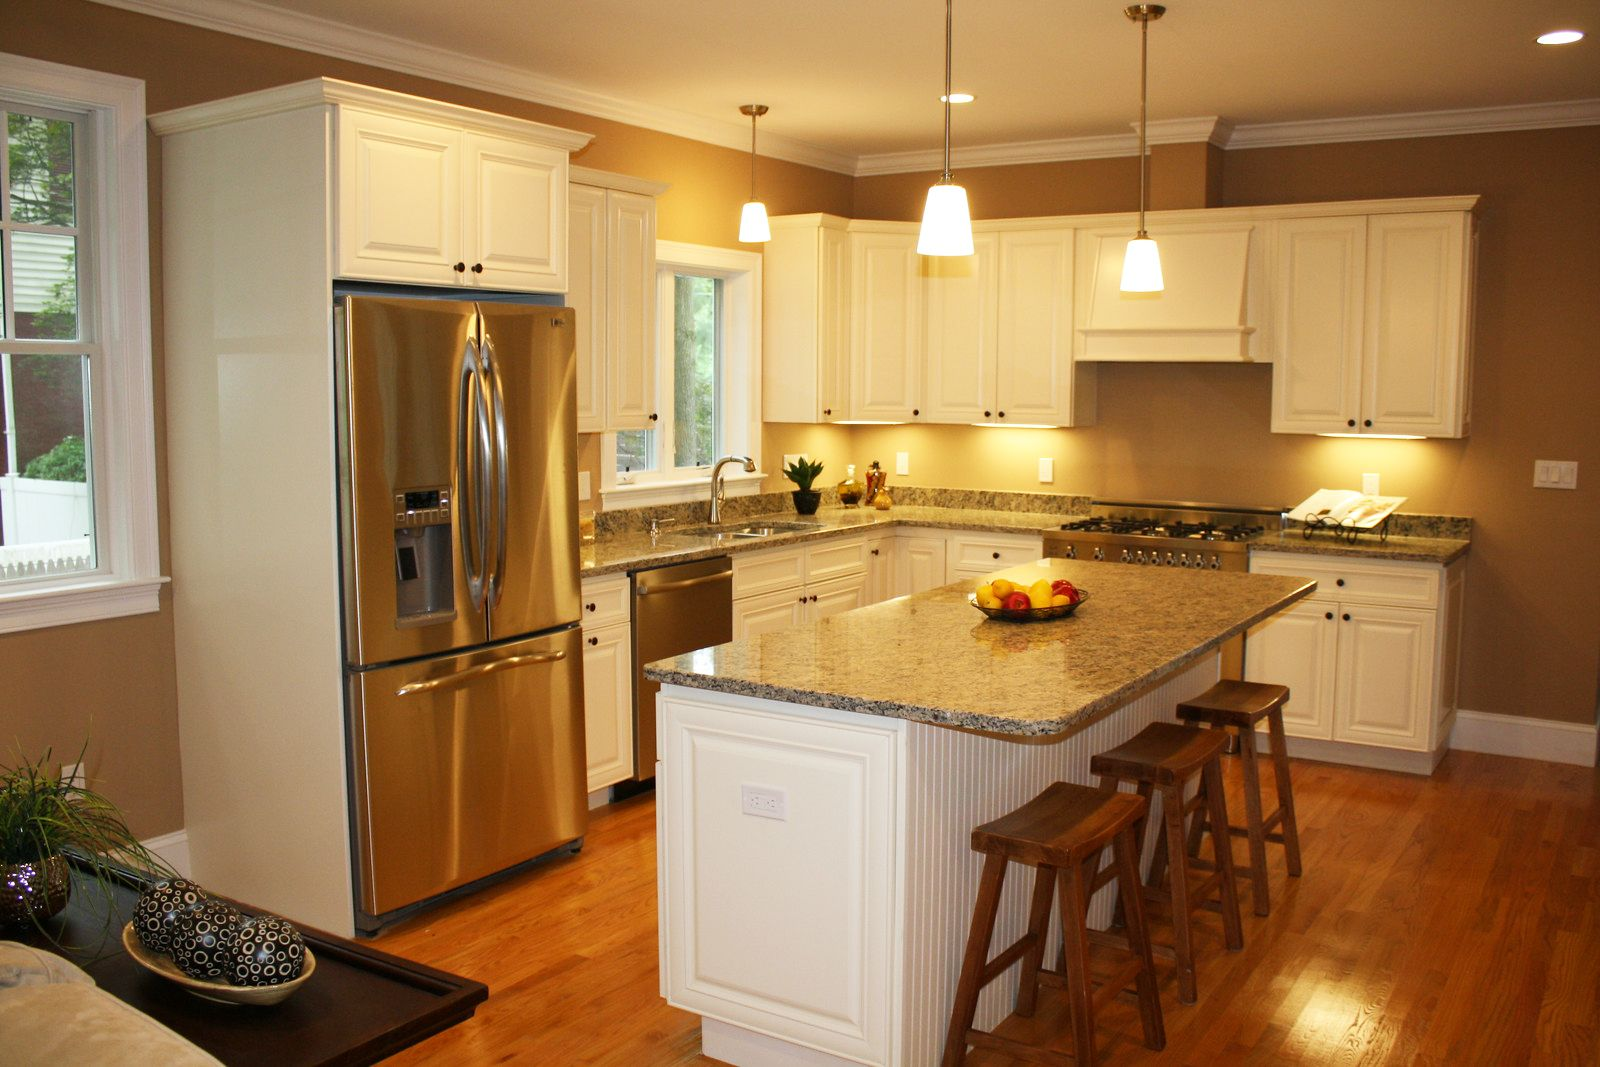 Best way to paint kitchen a step by step guide